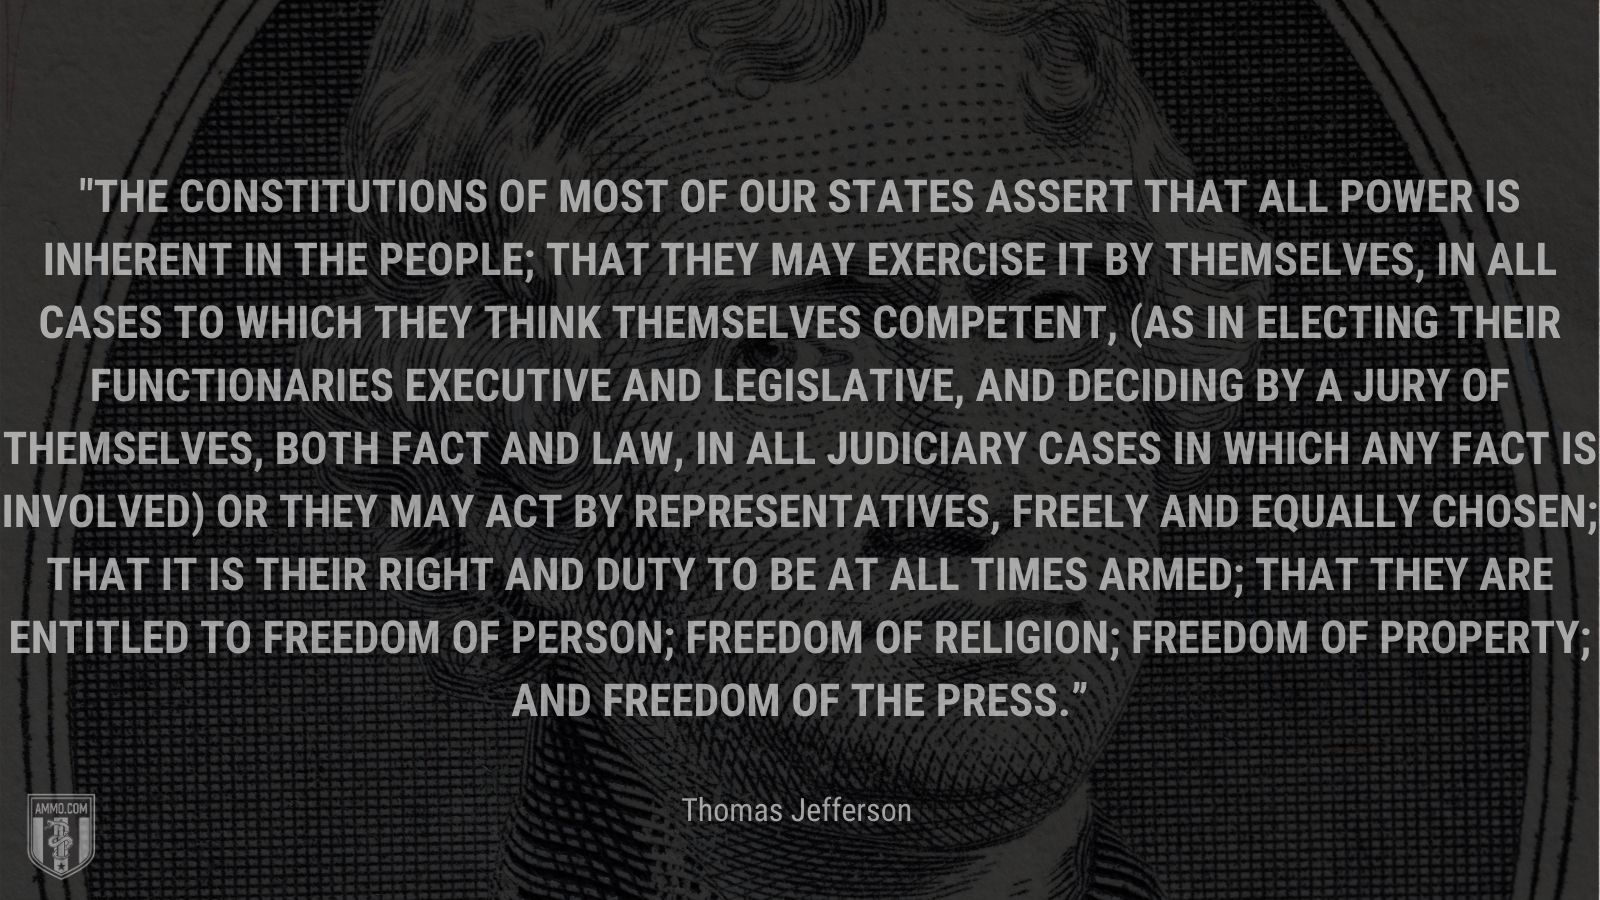 """""""The Constitutions of most of our states assert that all power is inherent in the people; that they may exercise it by themselves, in all cases to which they think themselves competent, (as in electing their functionaries executive and legislative, and deciding by a jury of themselves, both fact and law, in all judiciary cases in which any fact is involved) or they may act by representatives, freely and equally chosen; that it is their right and duty to be at all times armed; that they are entitled to freedom of person; freedom of religion; freedom of property; and freedom of the press."""" - Thomas Jefferson"""